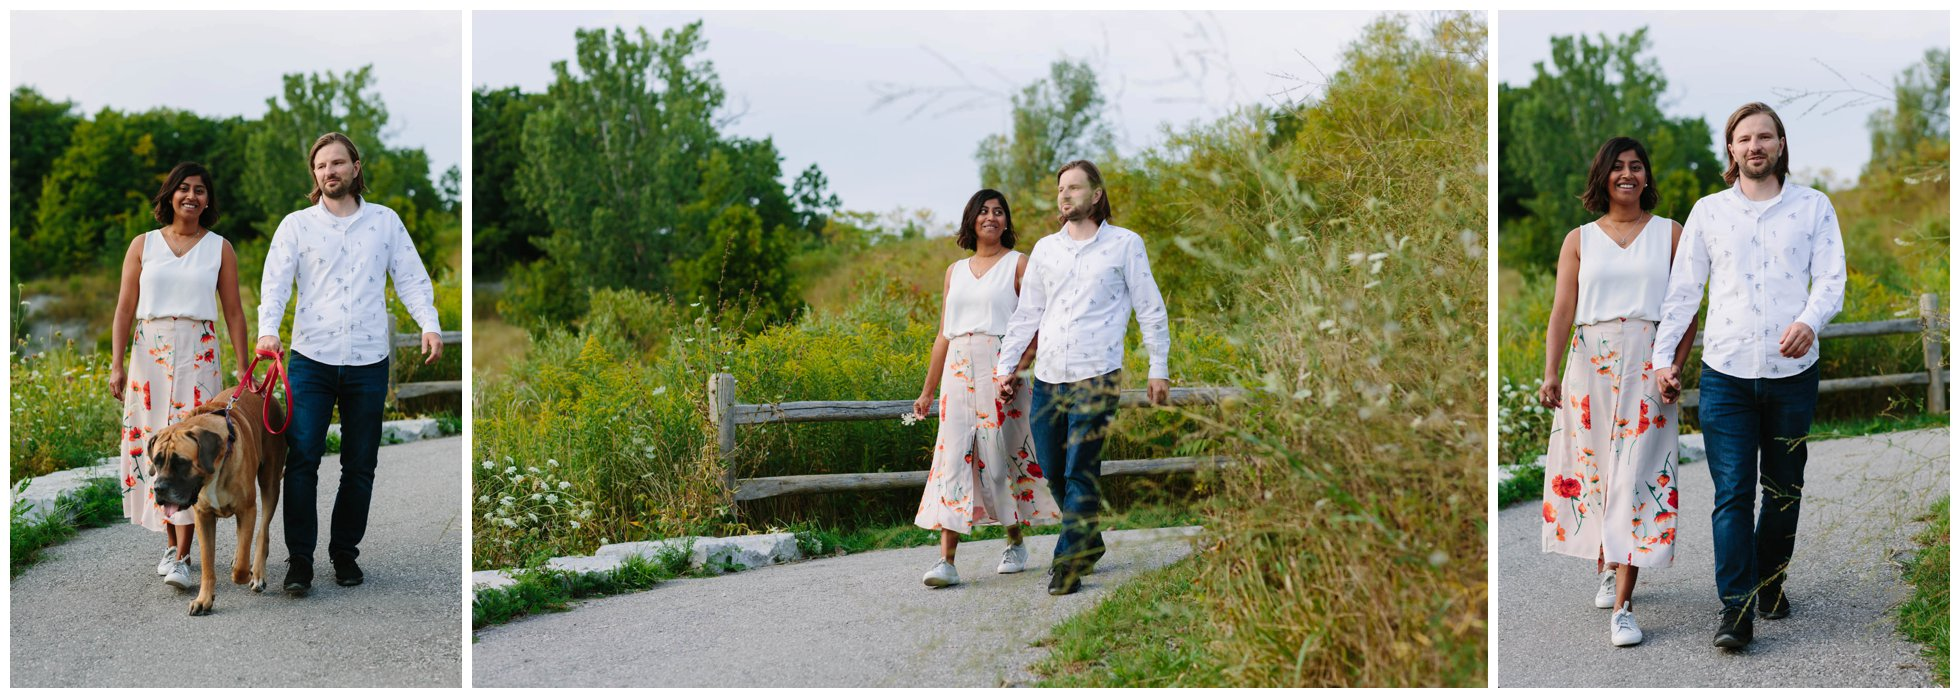 Toronto Engagement Session - Krzysztof and Dee (Life by Selena Photography)_0007.jpg